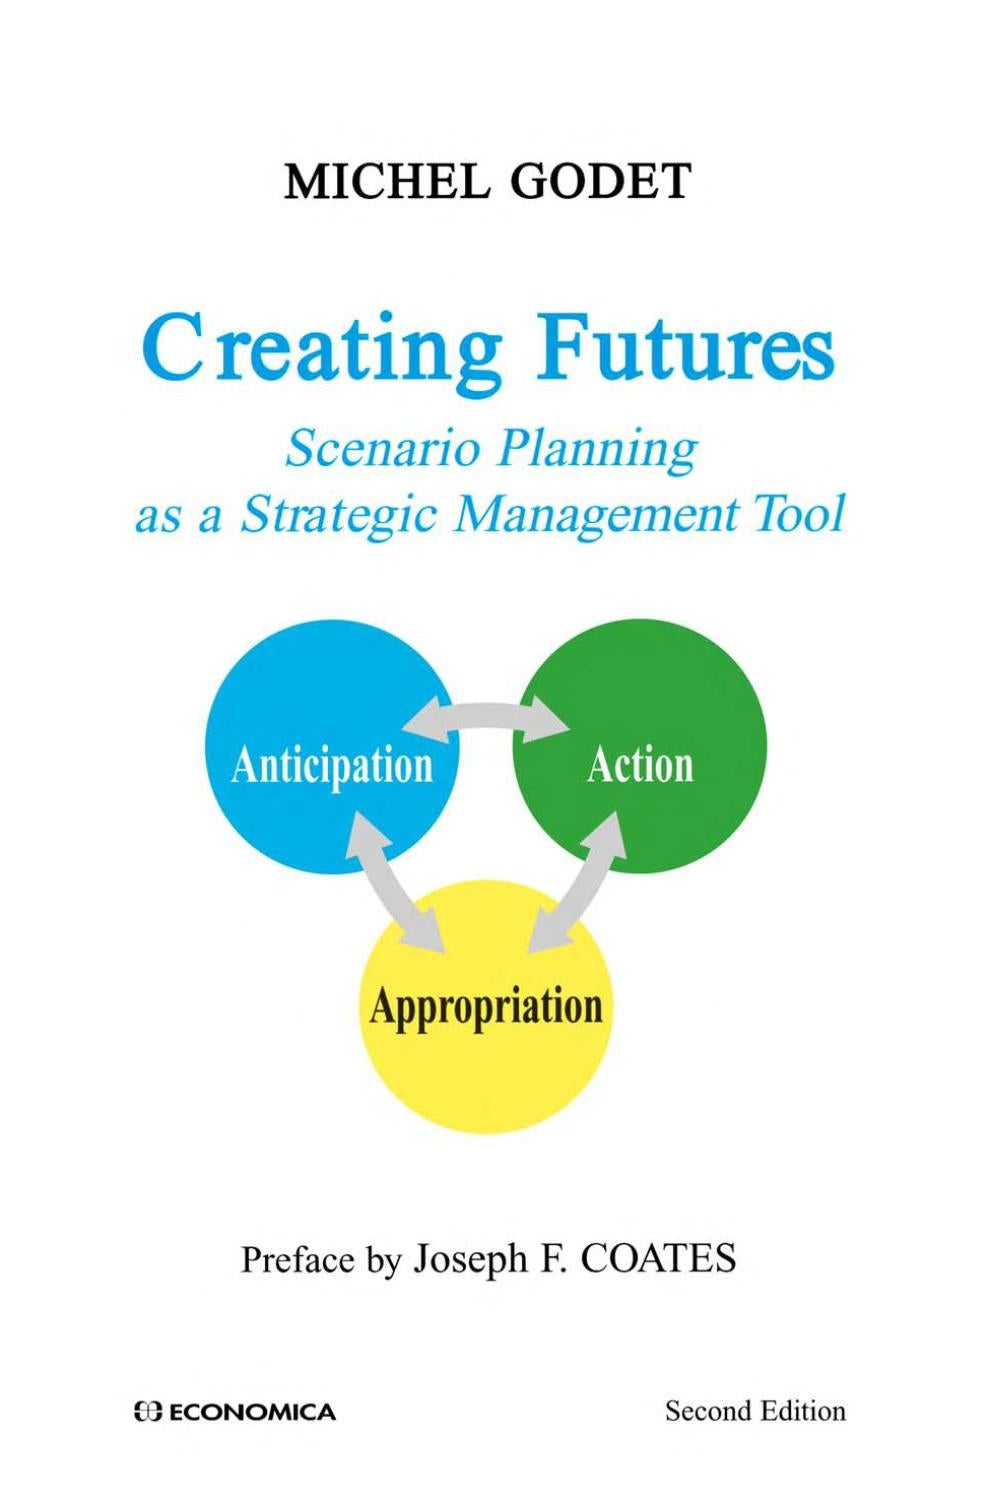 scenario planning essay Introduction the course business scenario for consulting represents the ideas of system thinking through system dynamics, which is based on modelling.